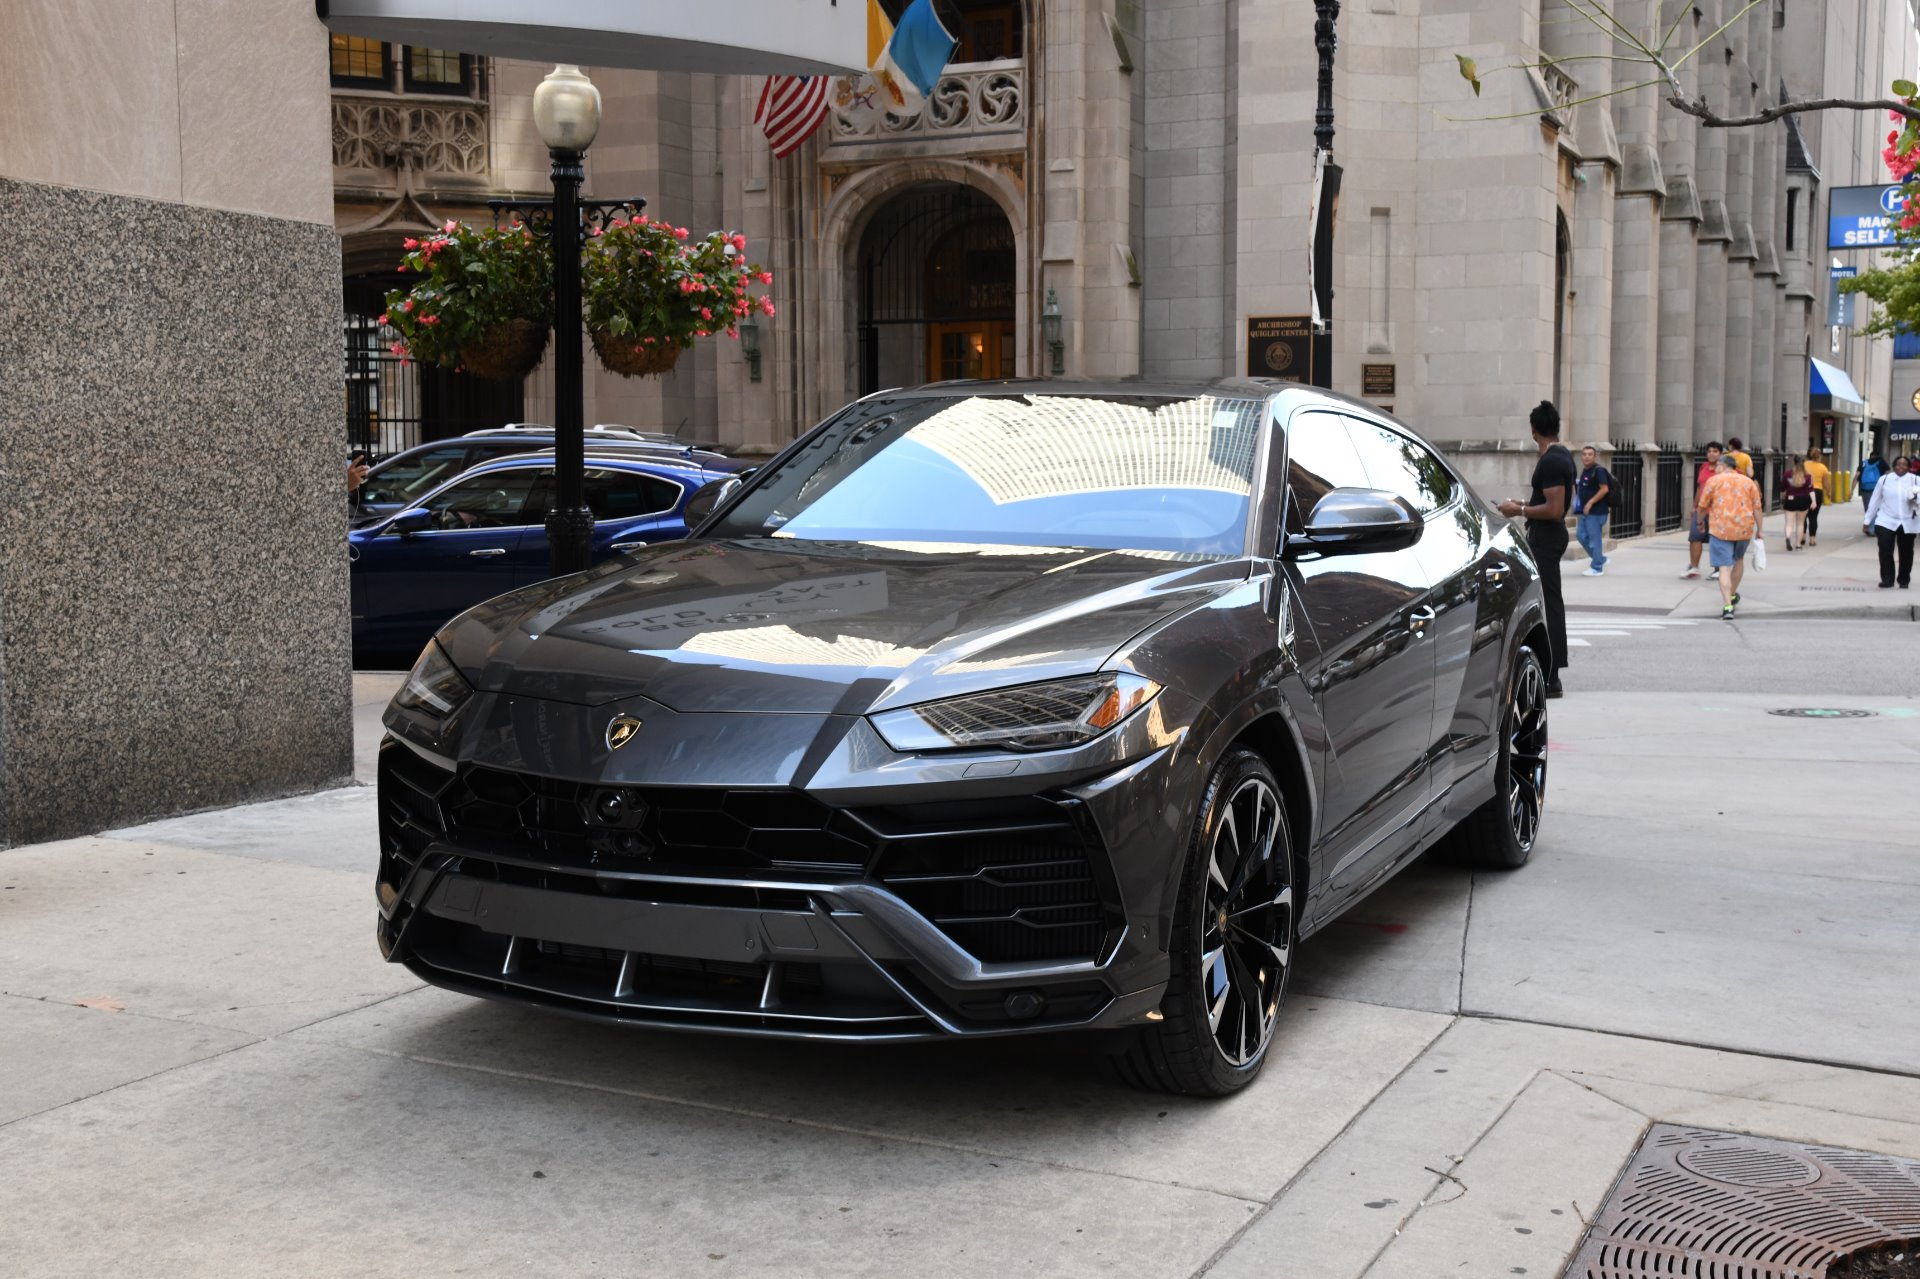 2019 Lamborghini Urus Stock  00838 for sale near Chicago